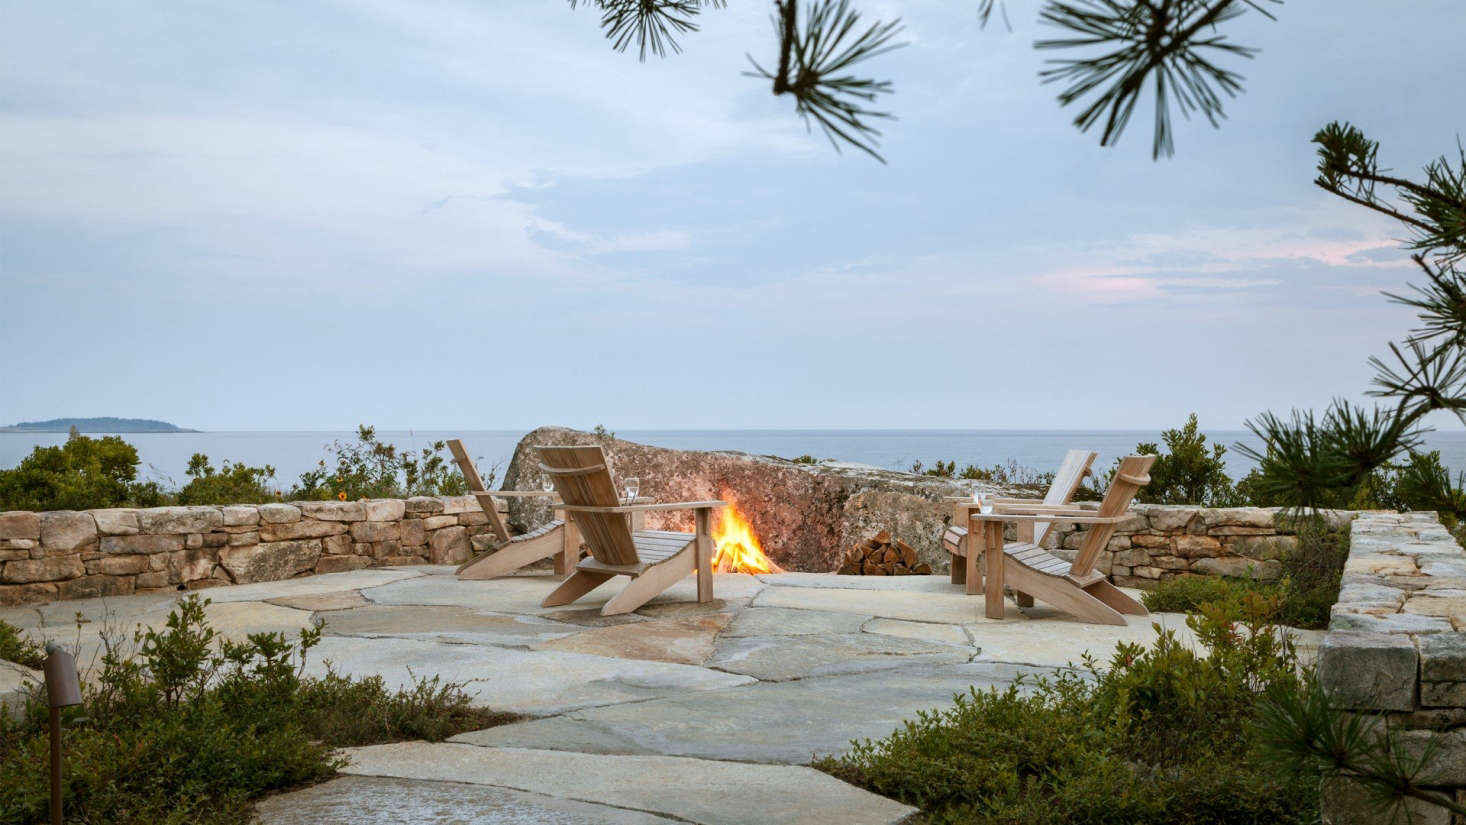 The angled boulder in front ofthe fire pit is the single largest rock placed on the site. The Adirondack chairs are from Crate & Barrel (though they&#8